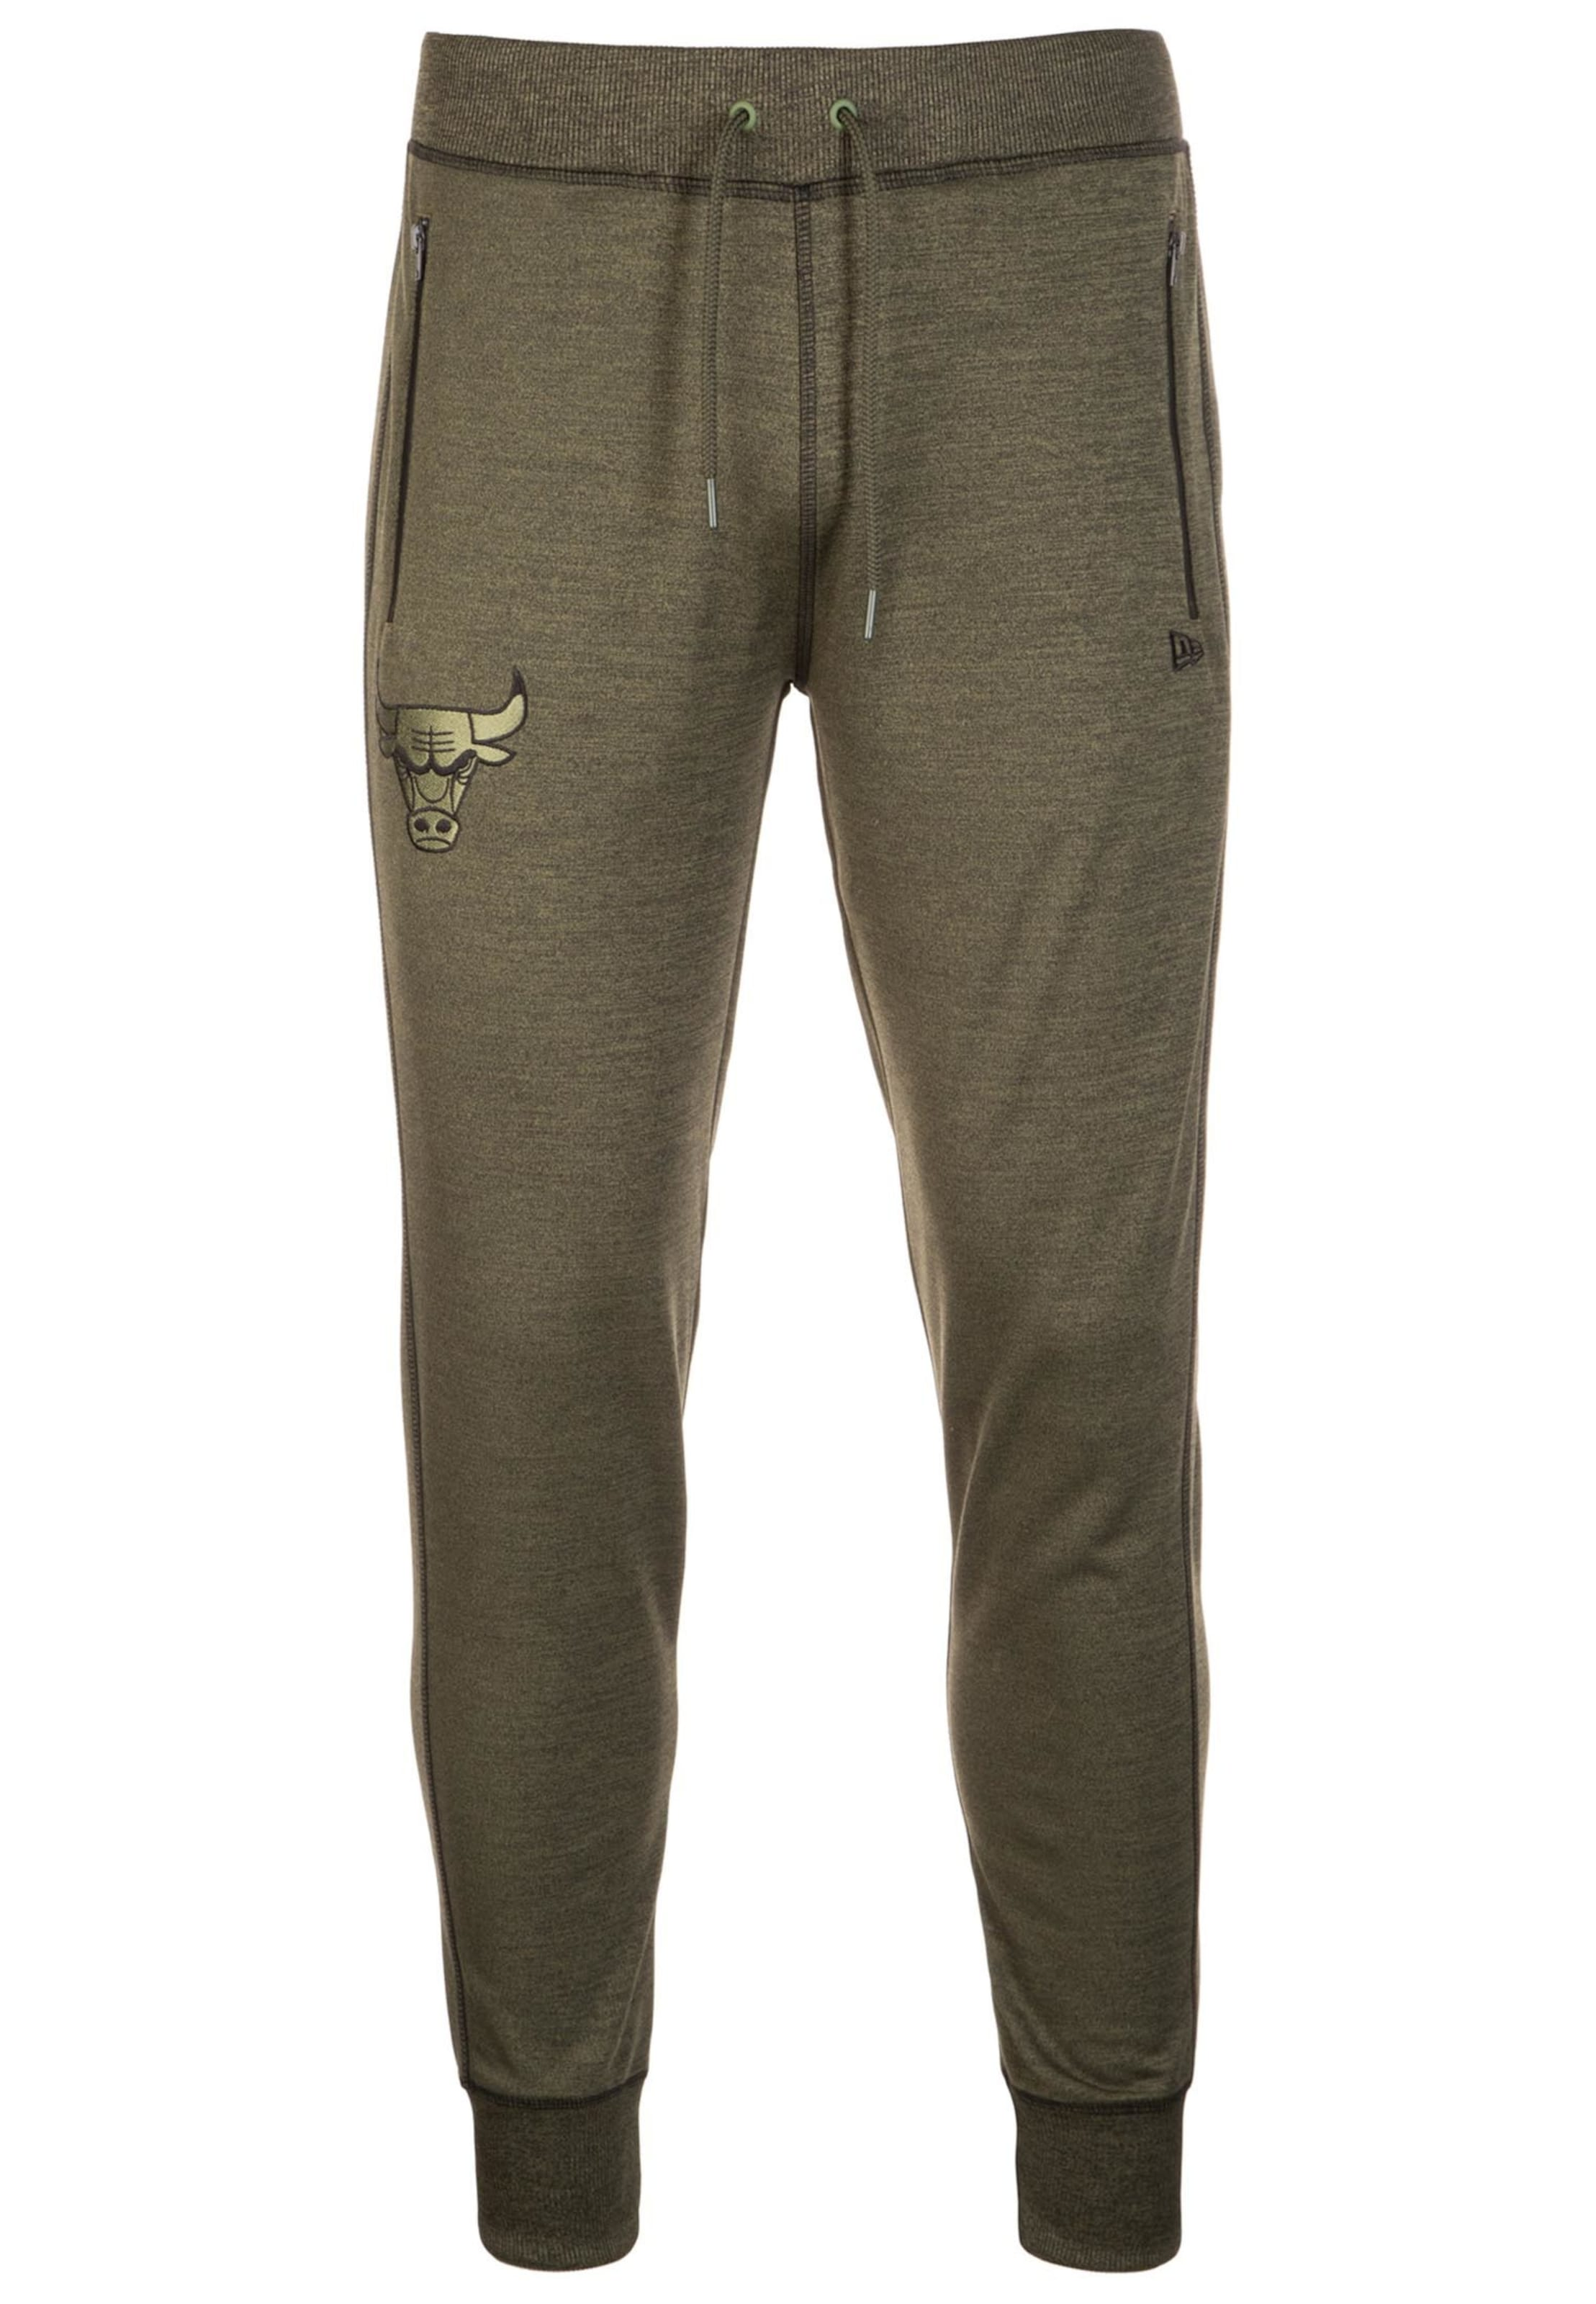 Fit' Chicago En 'nba Olive Era Engineered New Bulls Pantalon K31FcTlJ